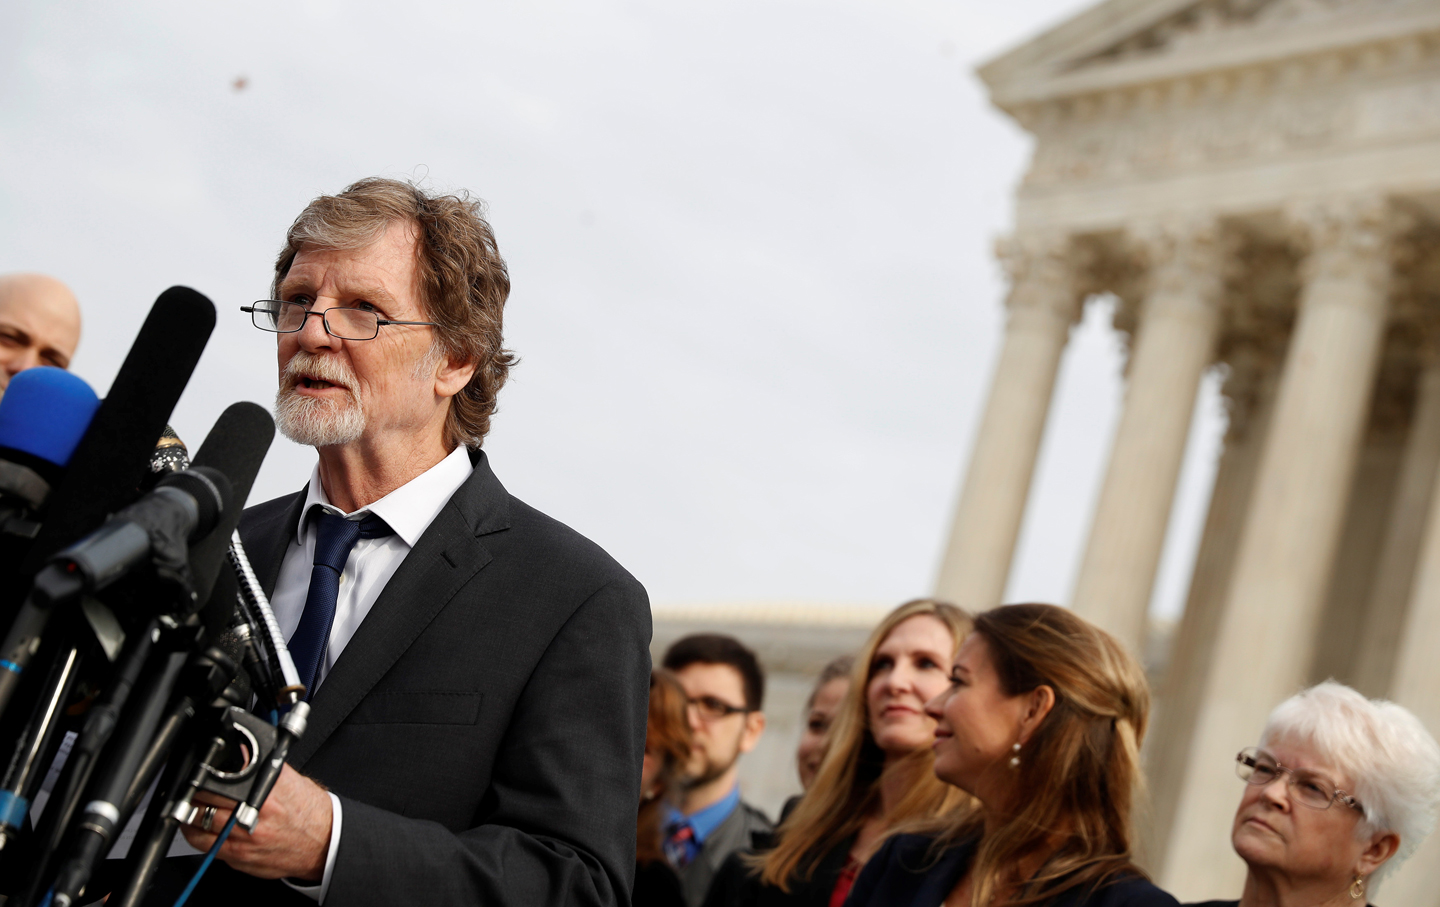 Colorado Wedding Cake Baker Wins before US Supreme Court